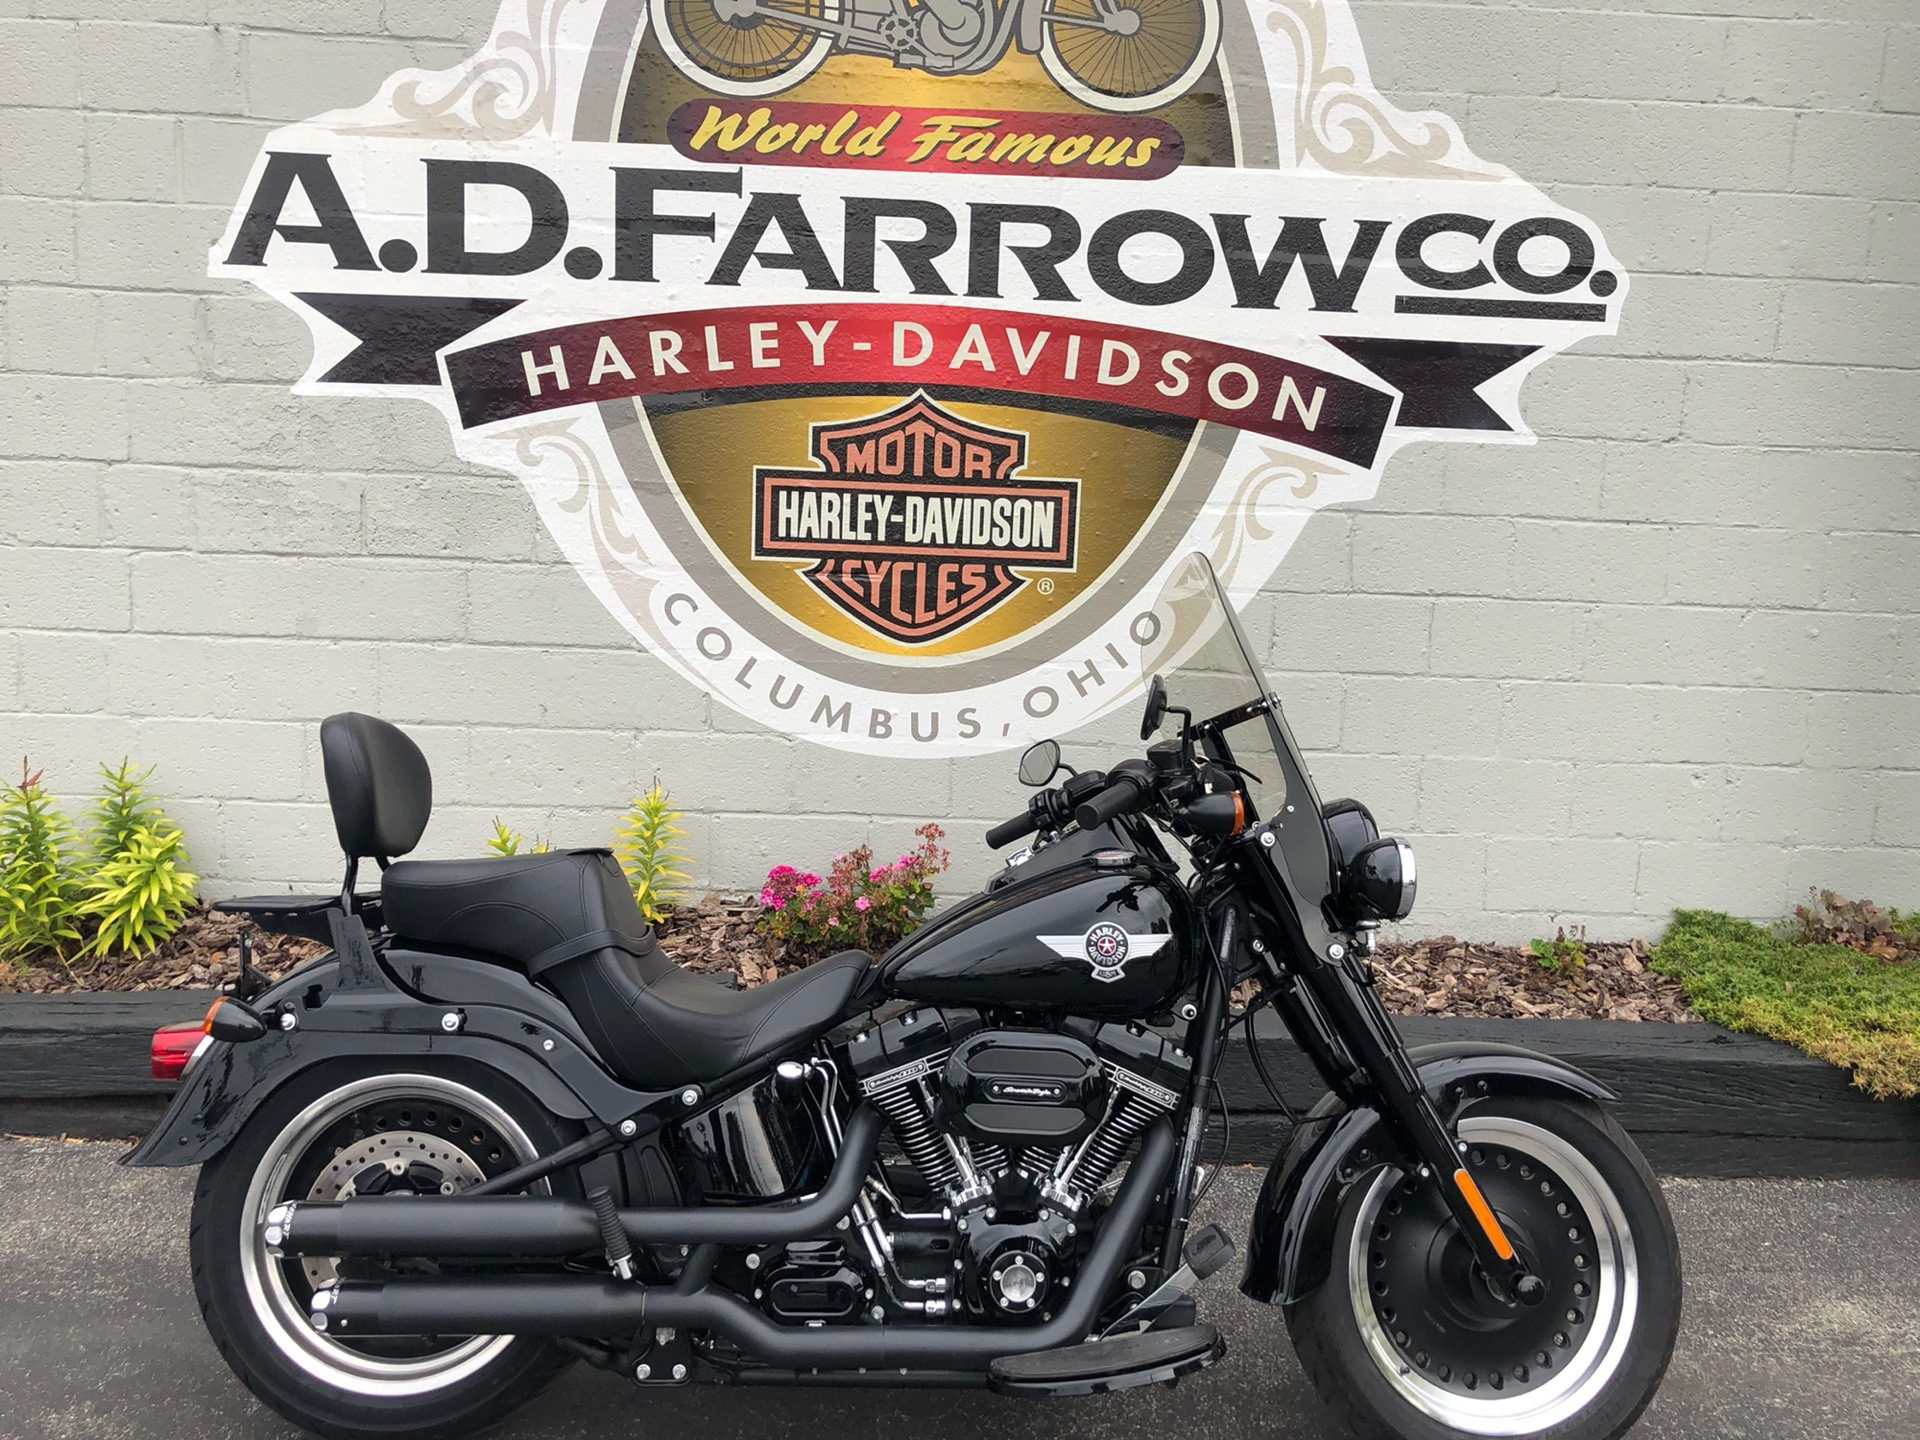 2016 Harley-Davidson FLSTFBS in Sunbury, Ohio - Photo 1